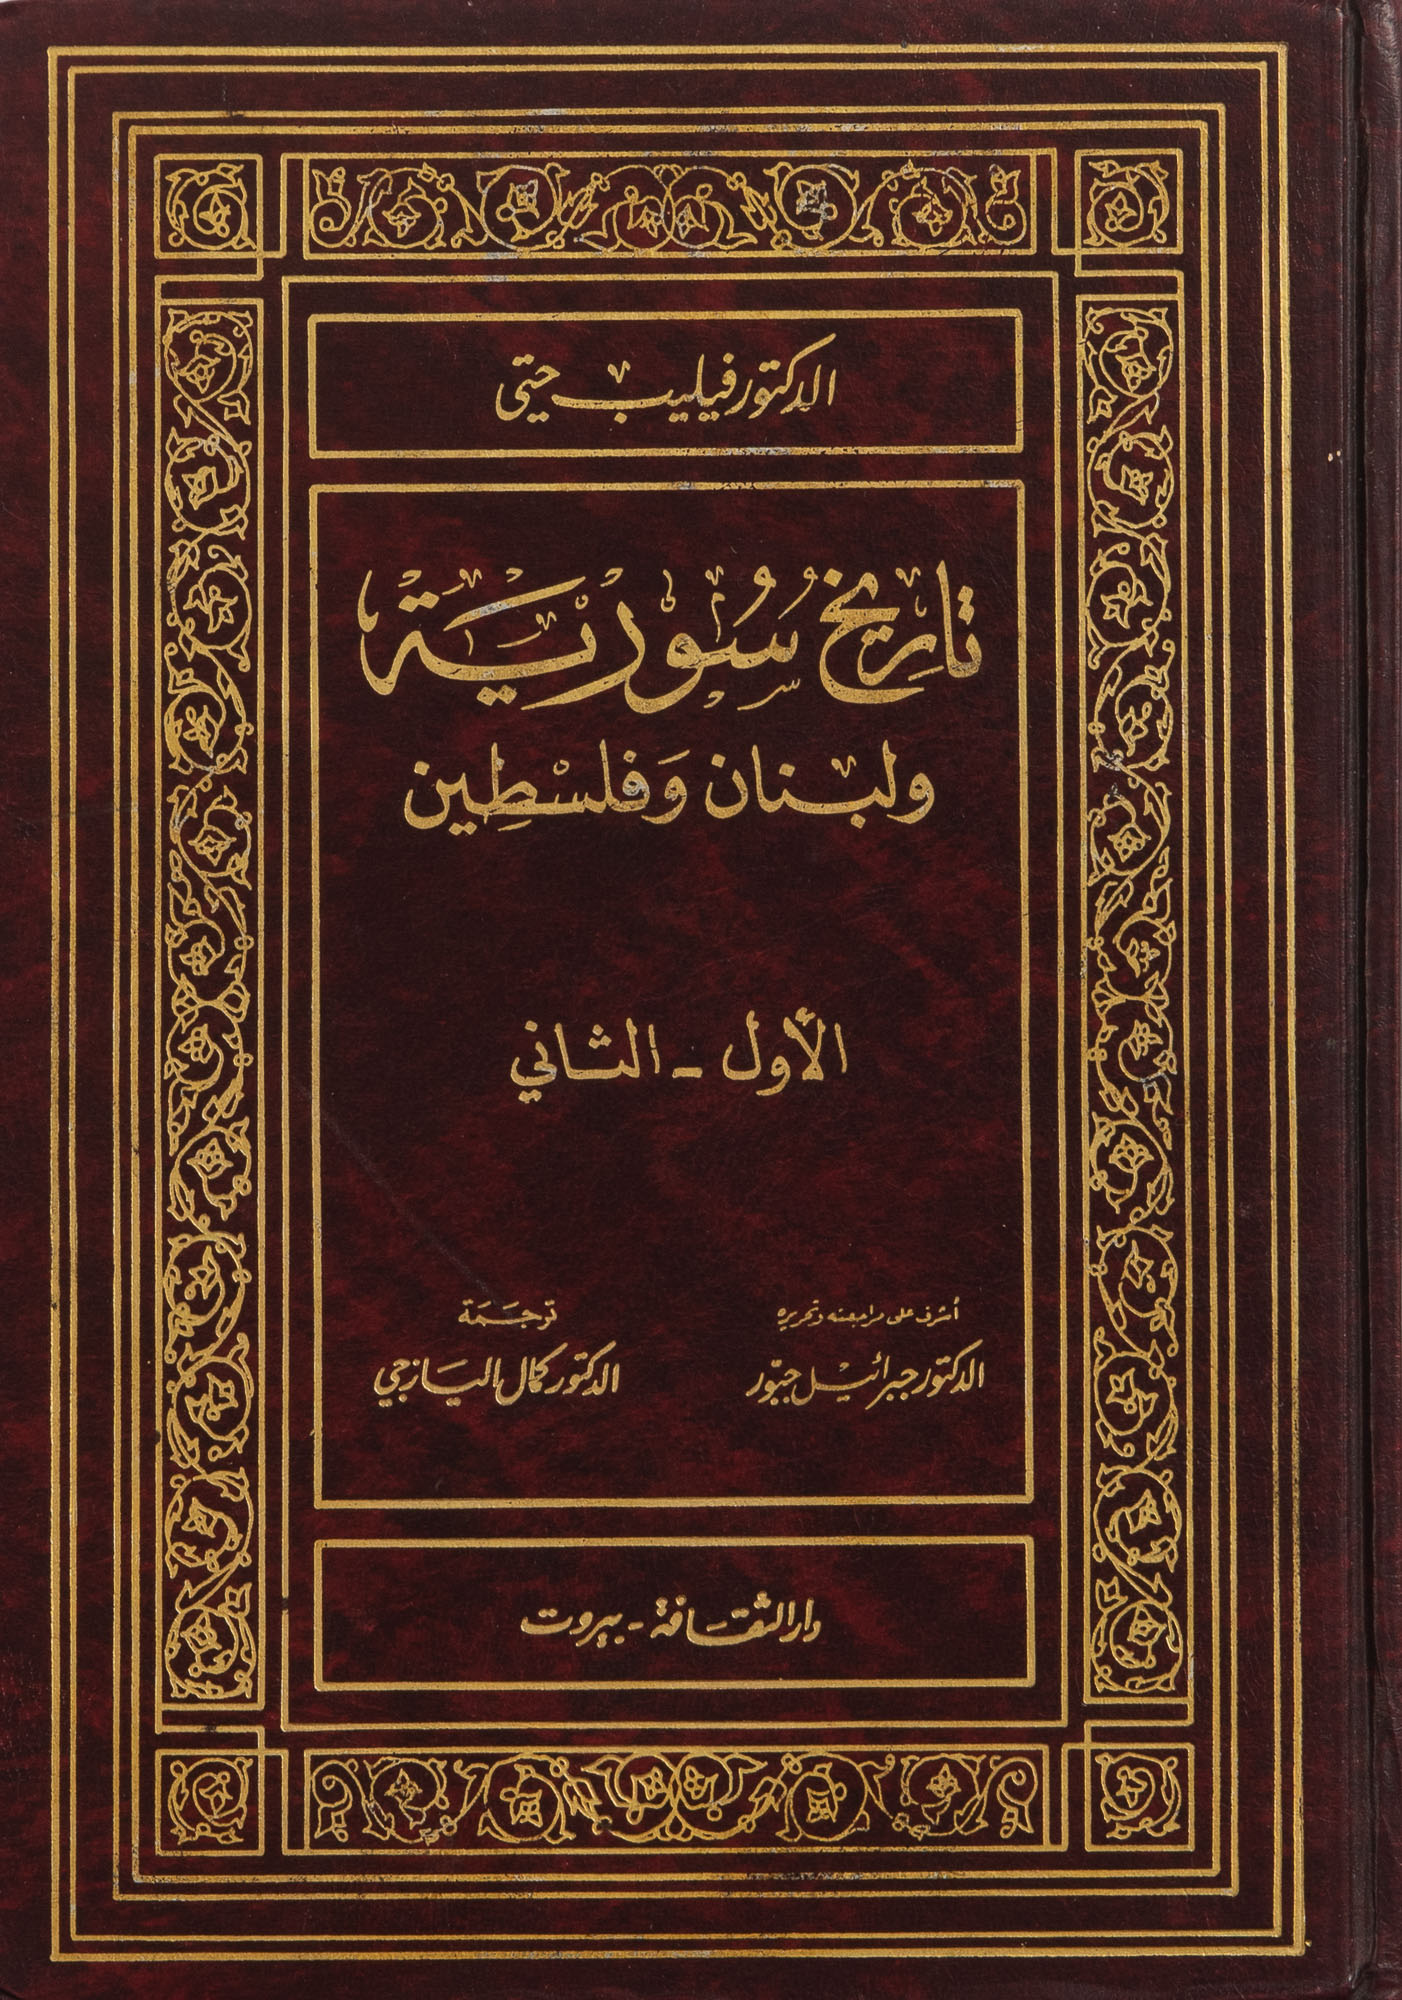 The cover of the book History of Syria: Including Lebanon and Palestine